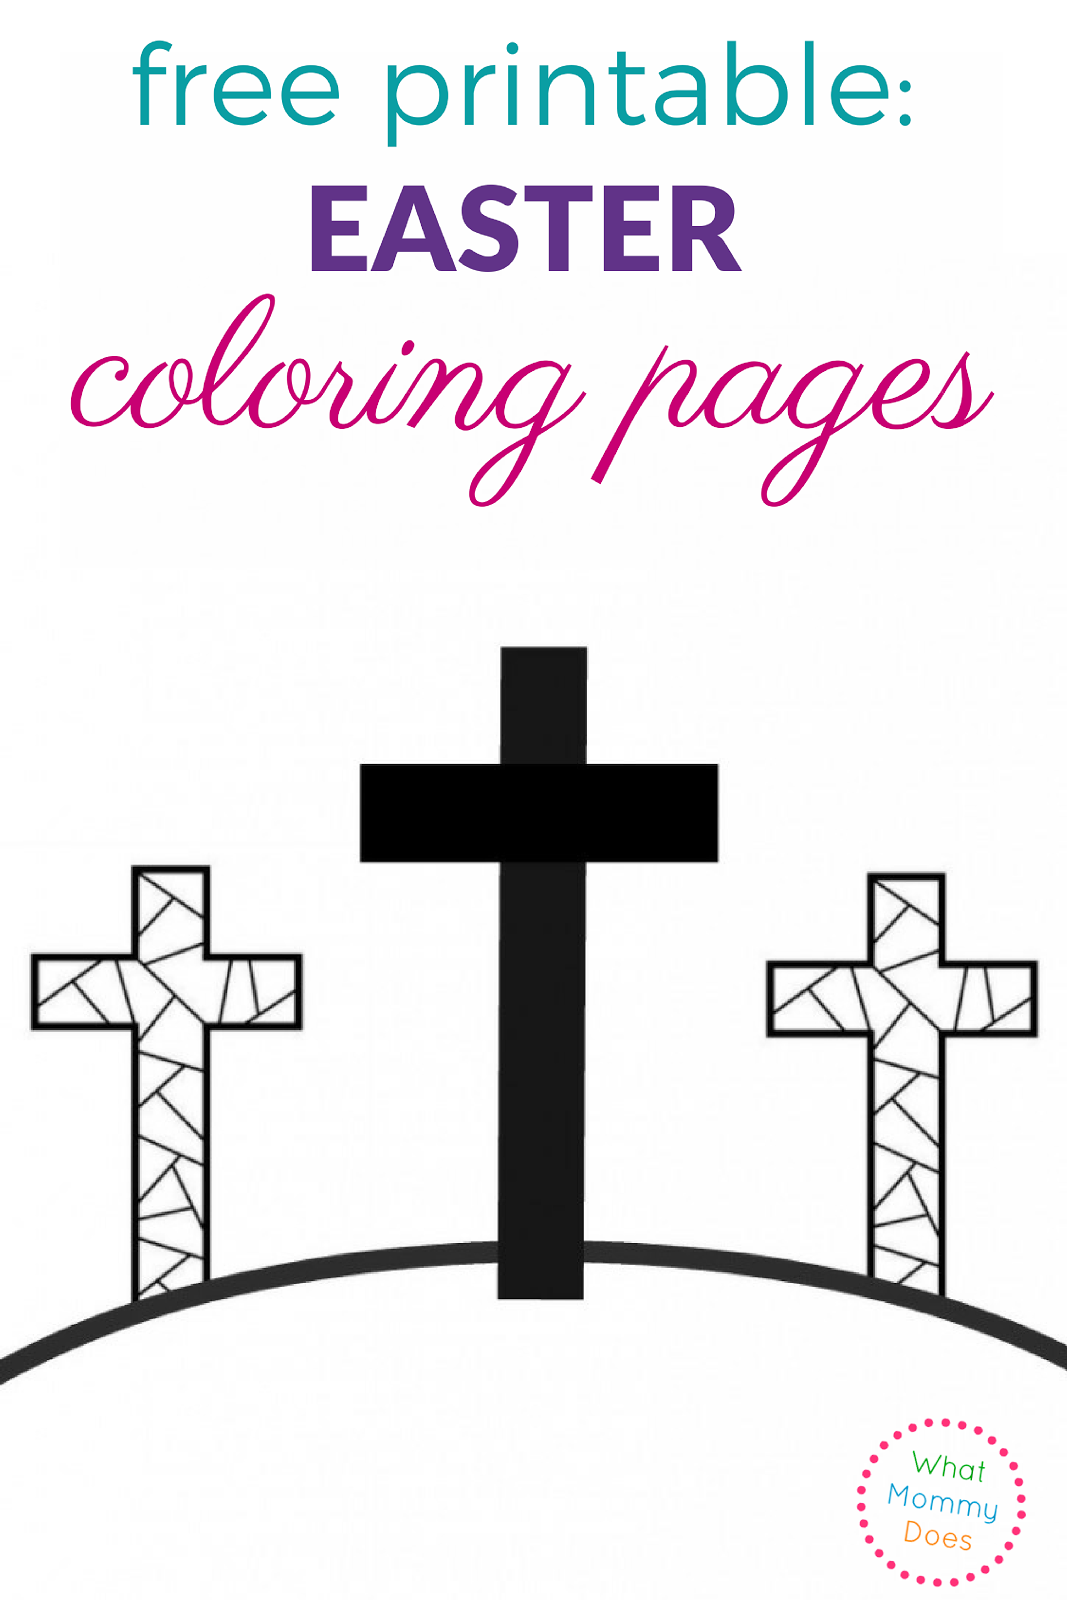 Printable coloring pages religious items - Free Printable Easter Coloring Pages